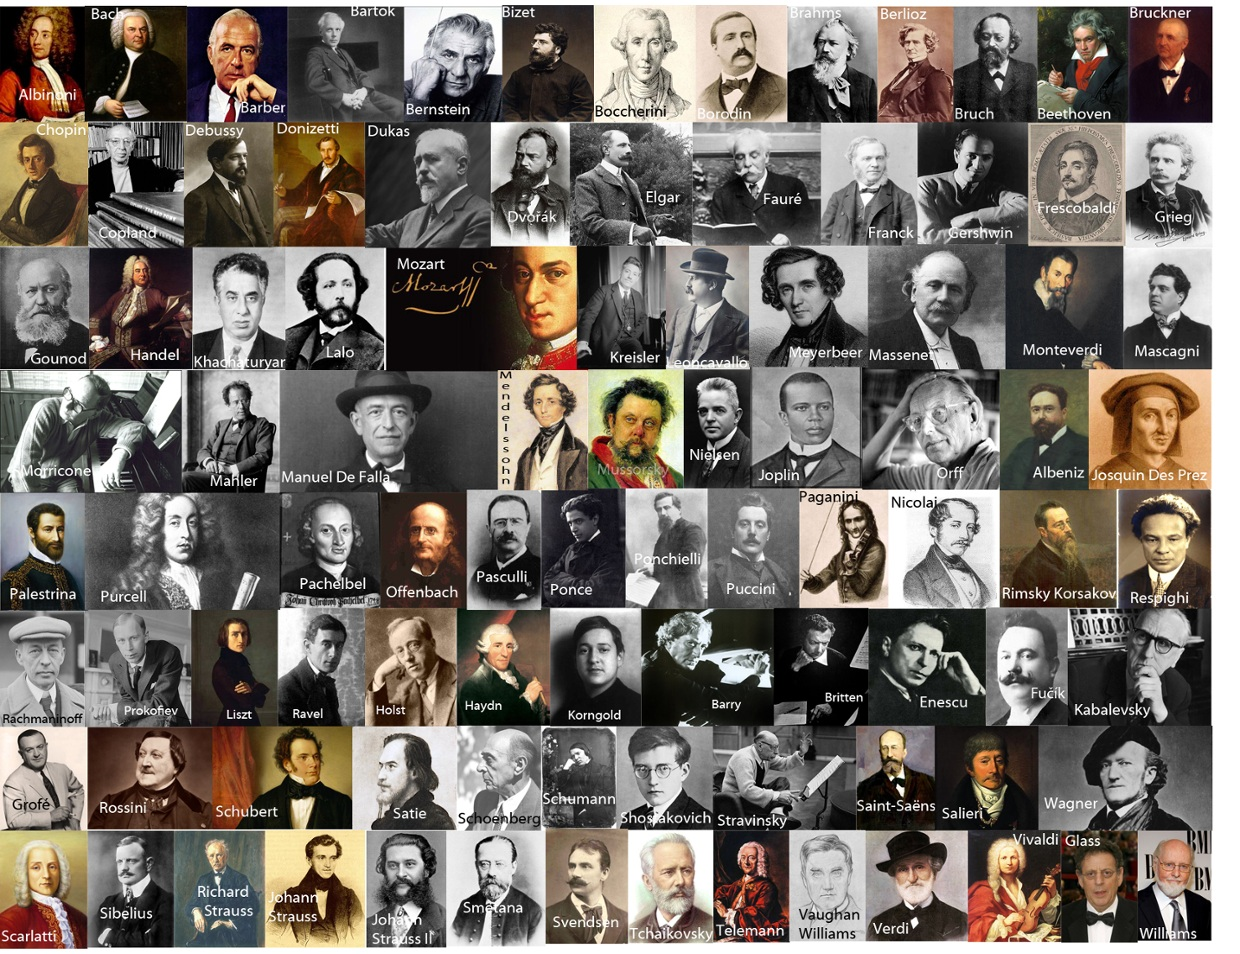 Famous Male Classical Composers Linked to YouTube Videos...